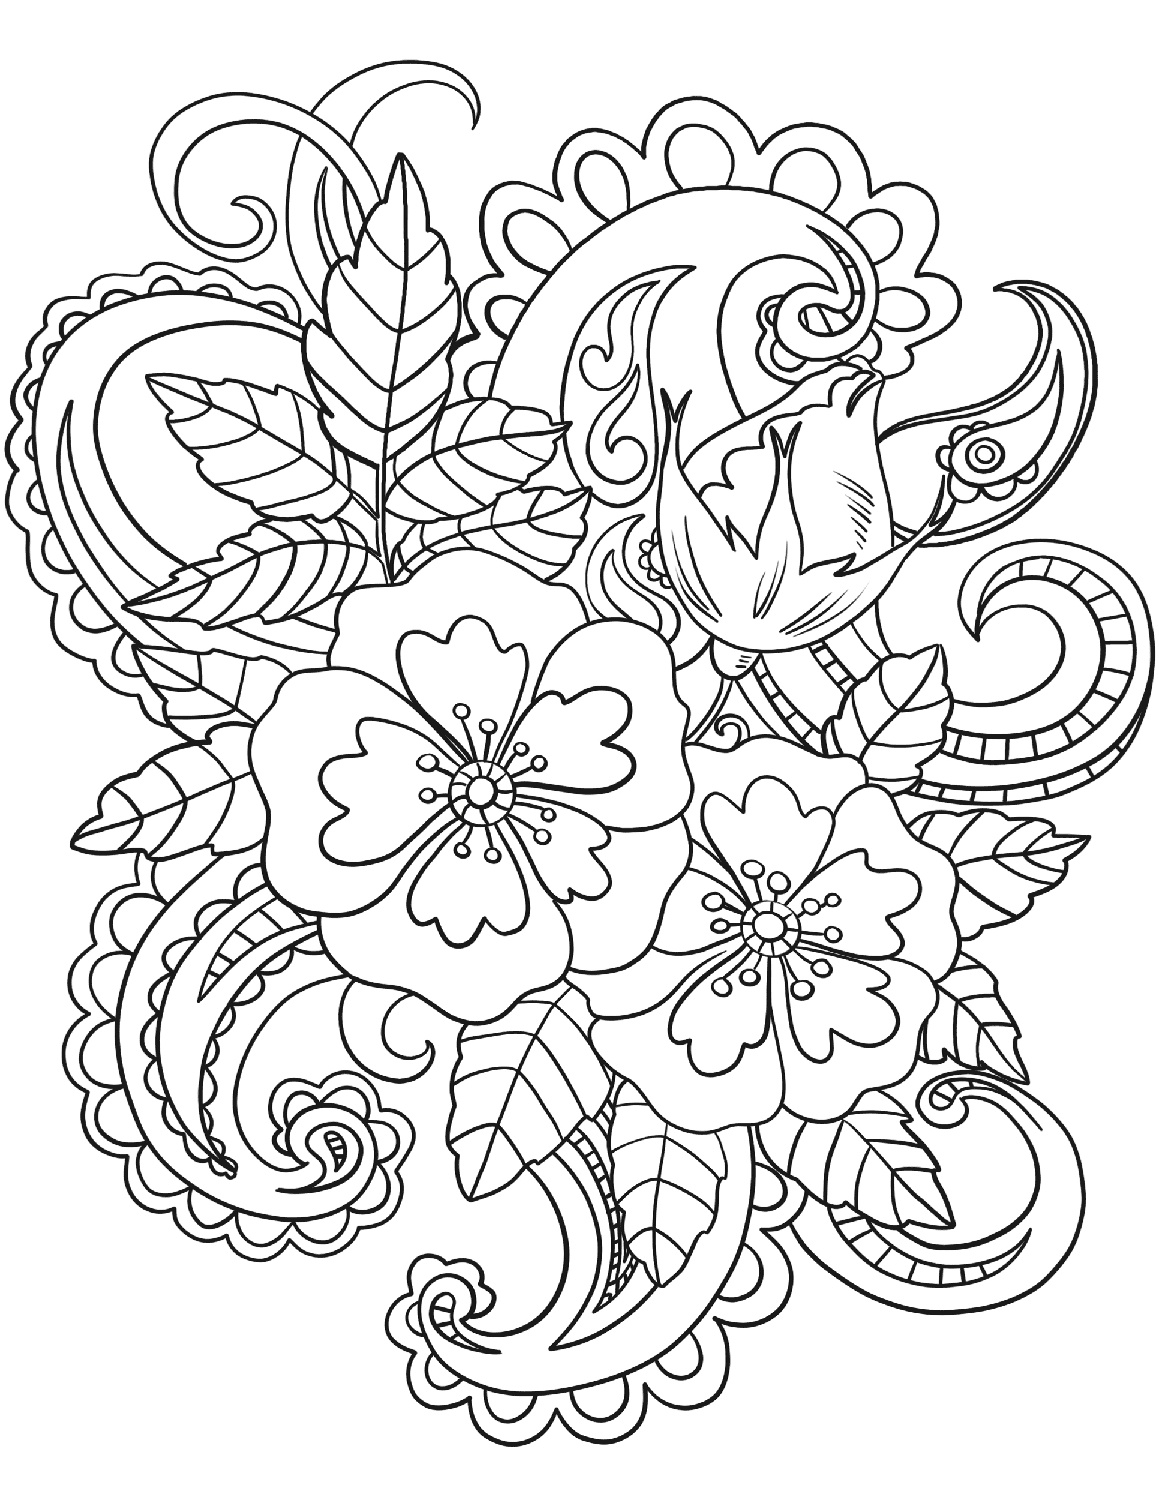 pattern pictures to colour enjoyable childrens coloring patterns learning printable colour pattern to pictures